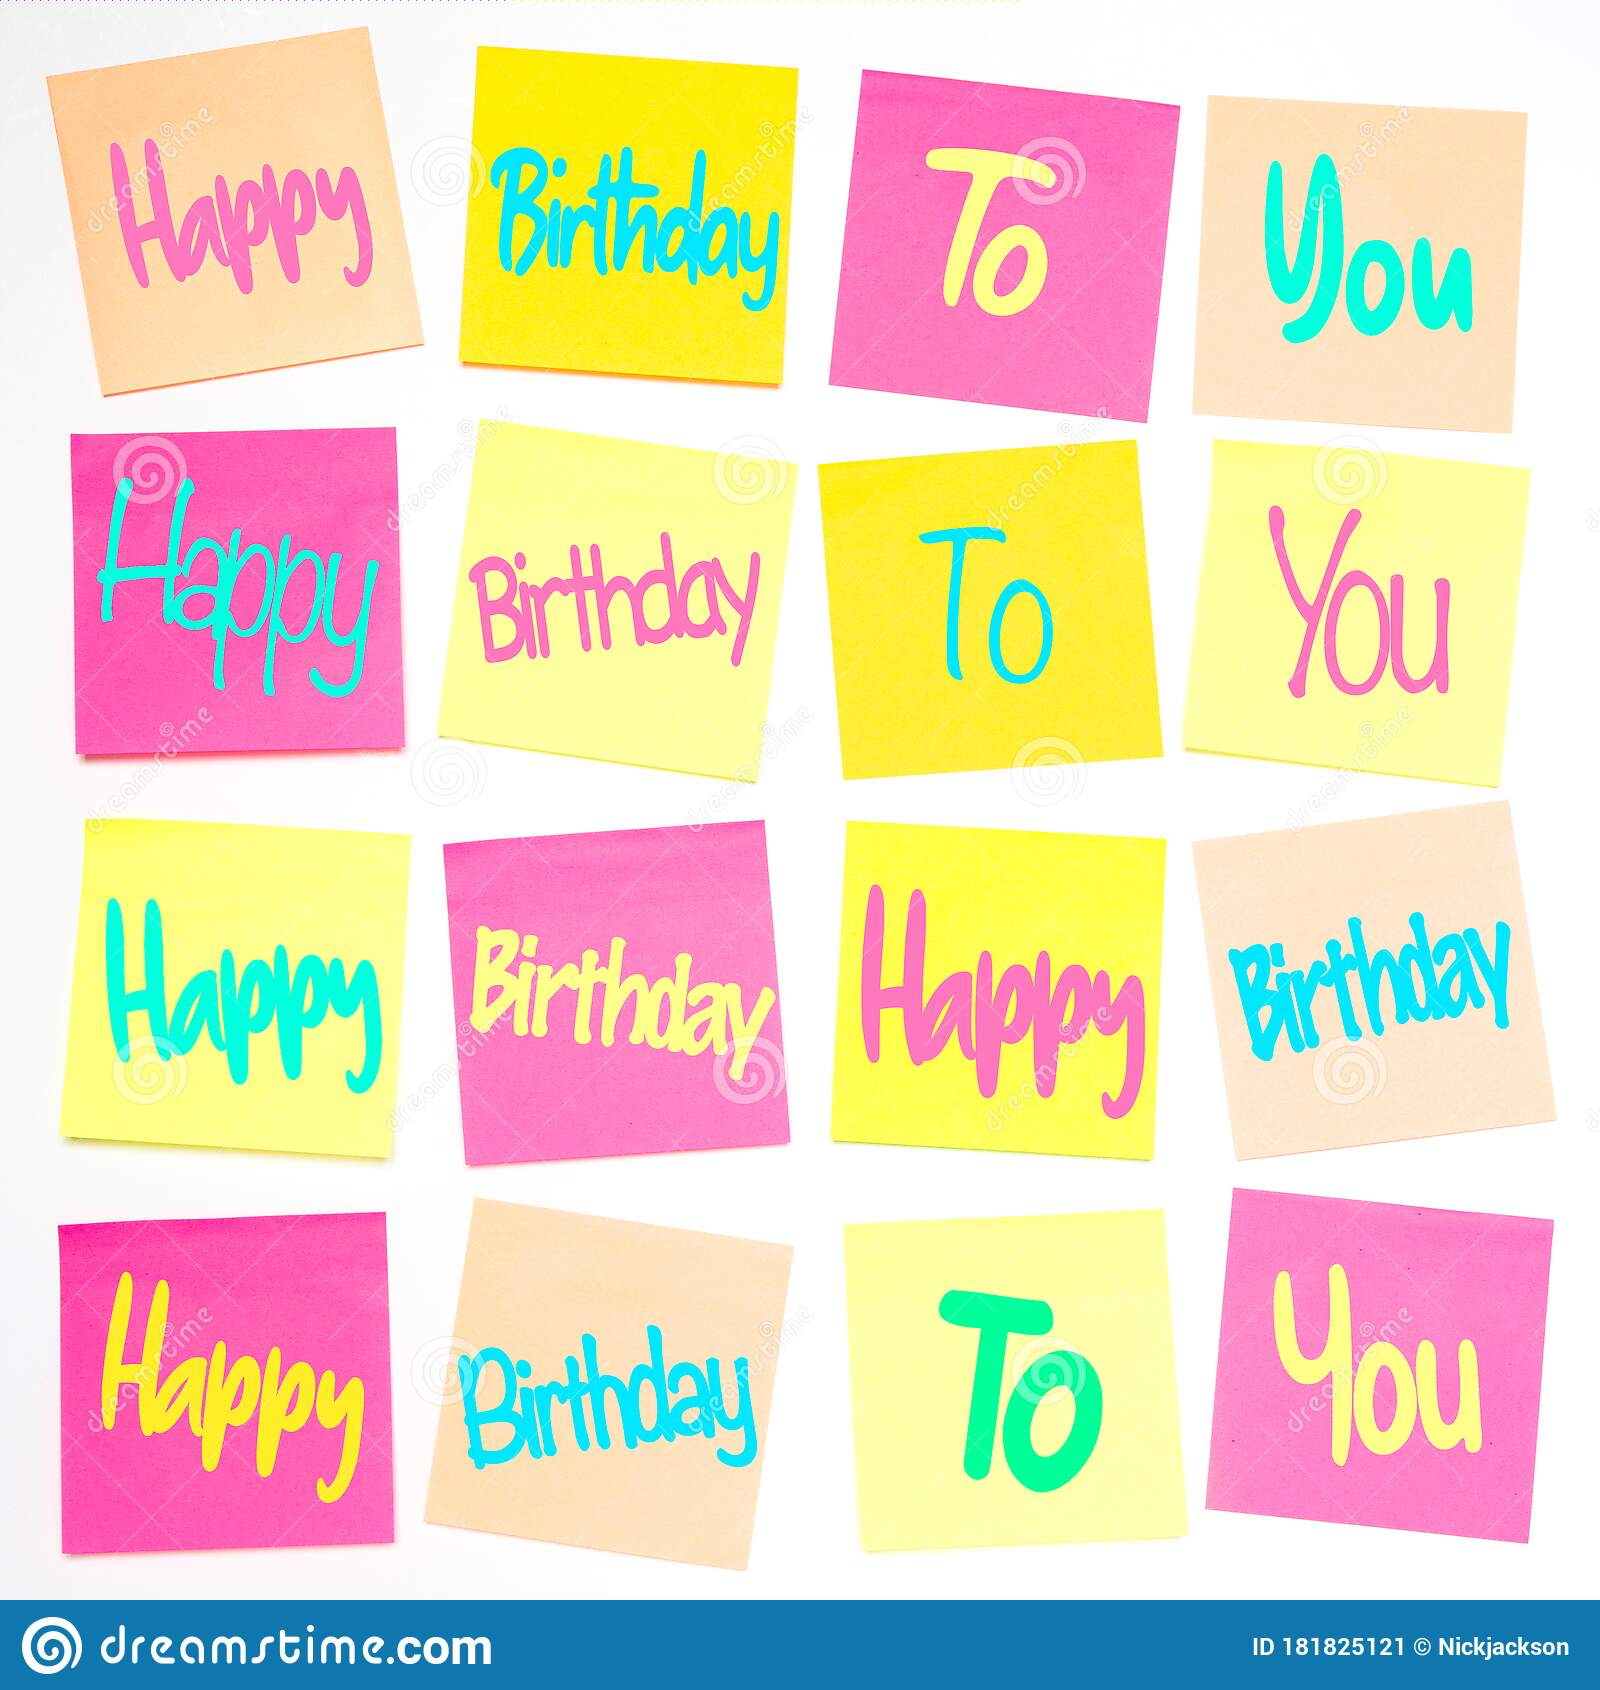 A Grid Of Colourful Sticky Notes With The Happy Birthday Song Lyrics On Stock Image Image Of Pastel Notepaper 181825121